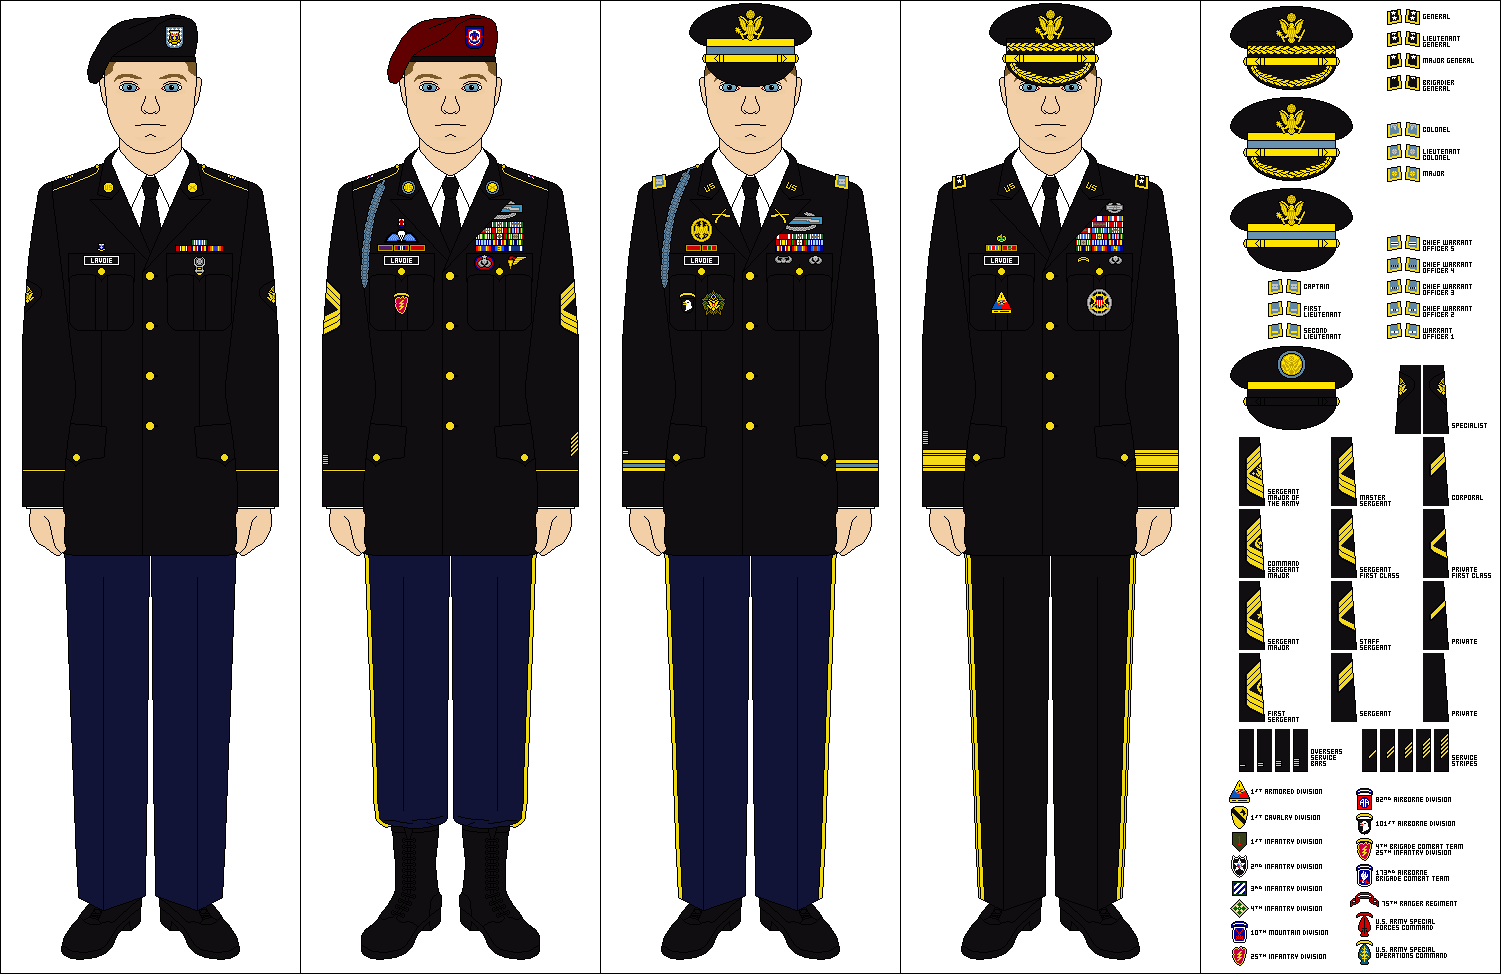 us army dress uniform   hot girls wallpaper